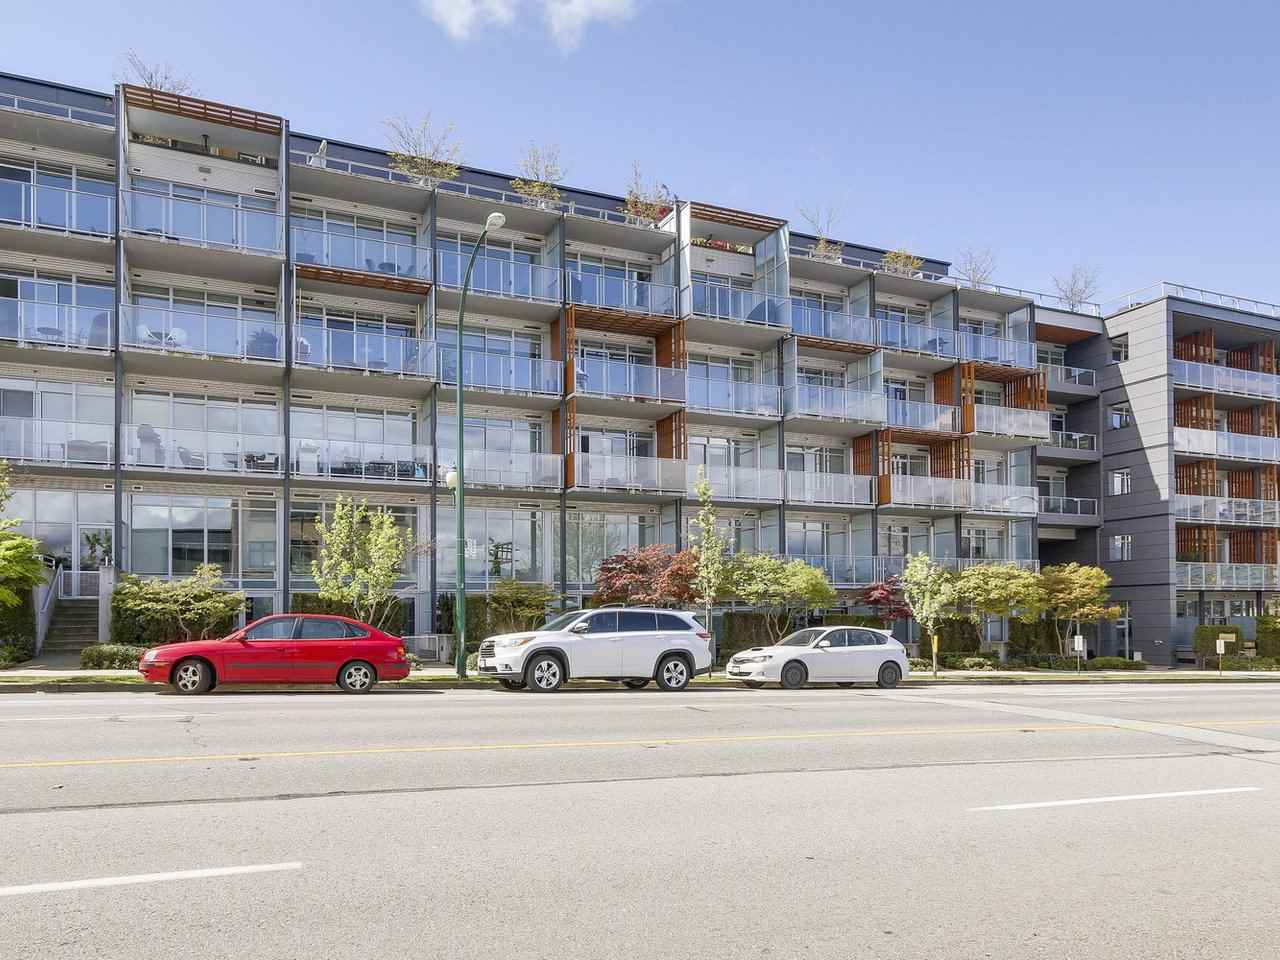 "Main Photo: 522 256 E 2ND Avenue in Vancouver: Mount Pleasant VE Condo for sale in ""JACOBSEN"" (Vancouver East)  : MLS® # R2161219"